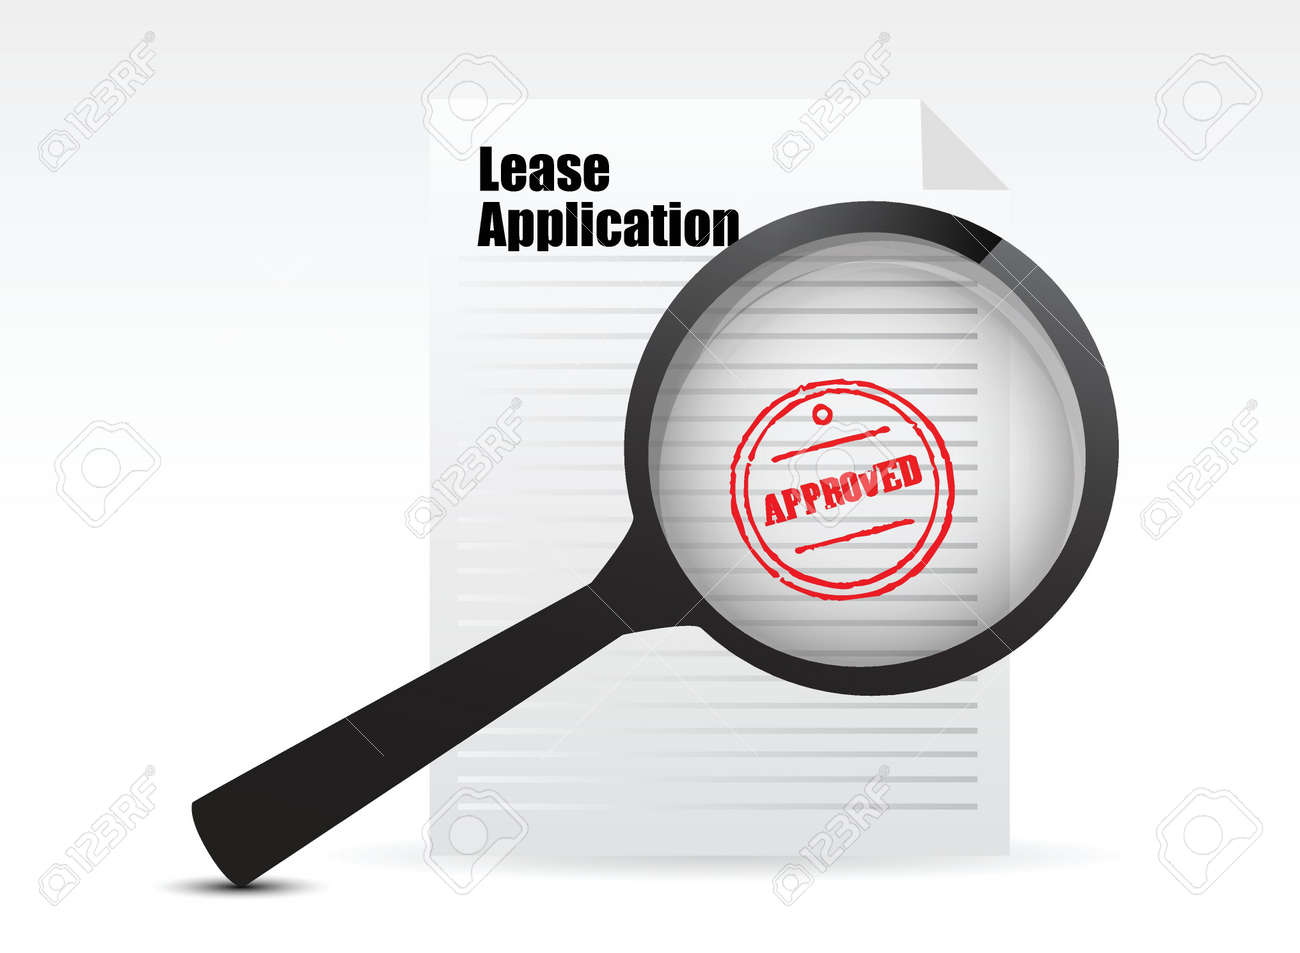 Lease Applications sign illustration design over white Stock Vector - 17662733